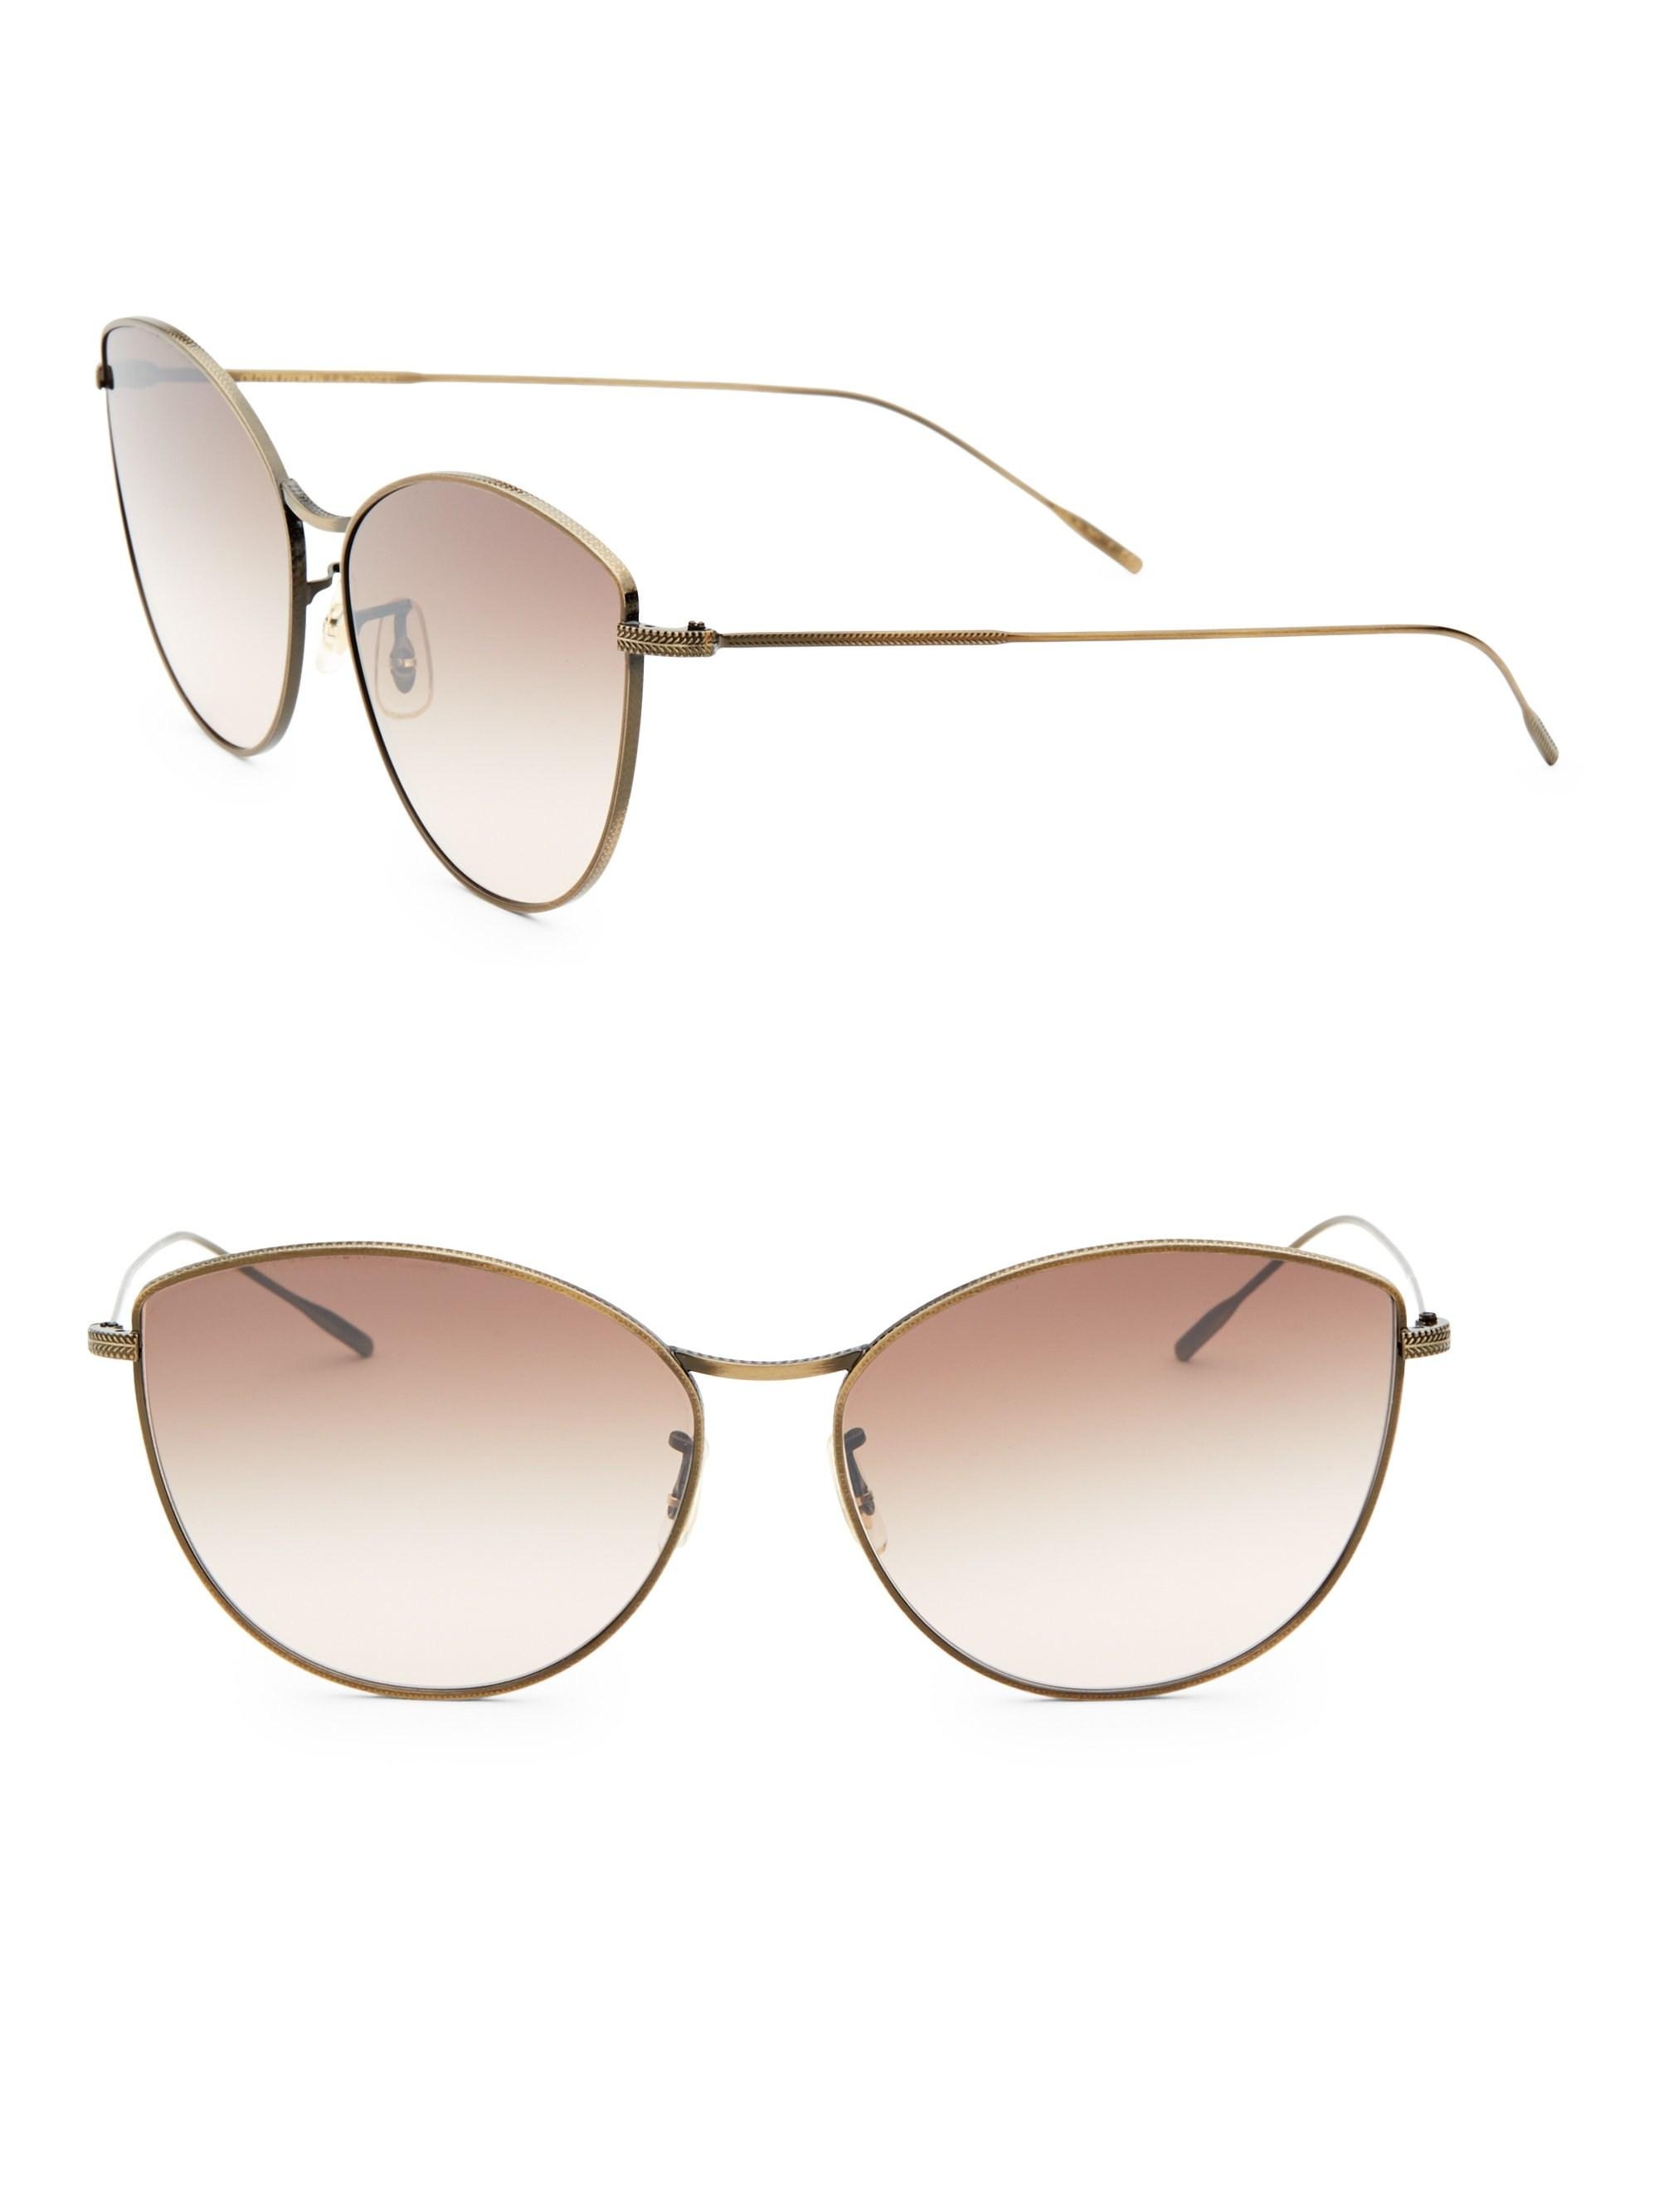 9899b55e7a1 Lyst - Oliver Peoples Women s Rayette 60mm Cat-eye Sunglasses - Gold ...